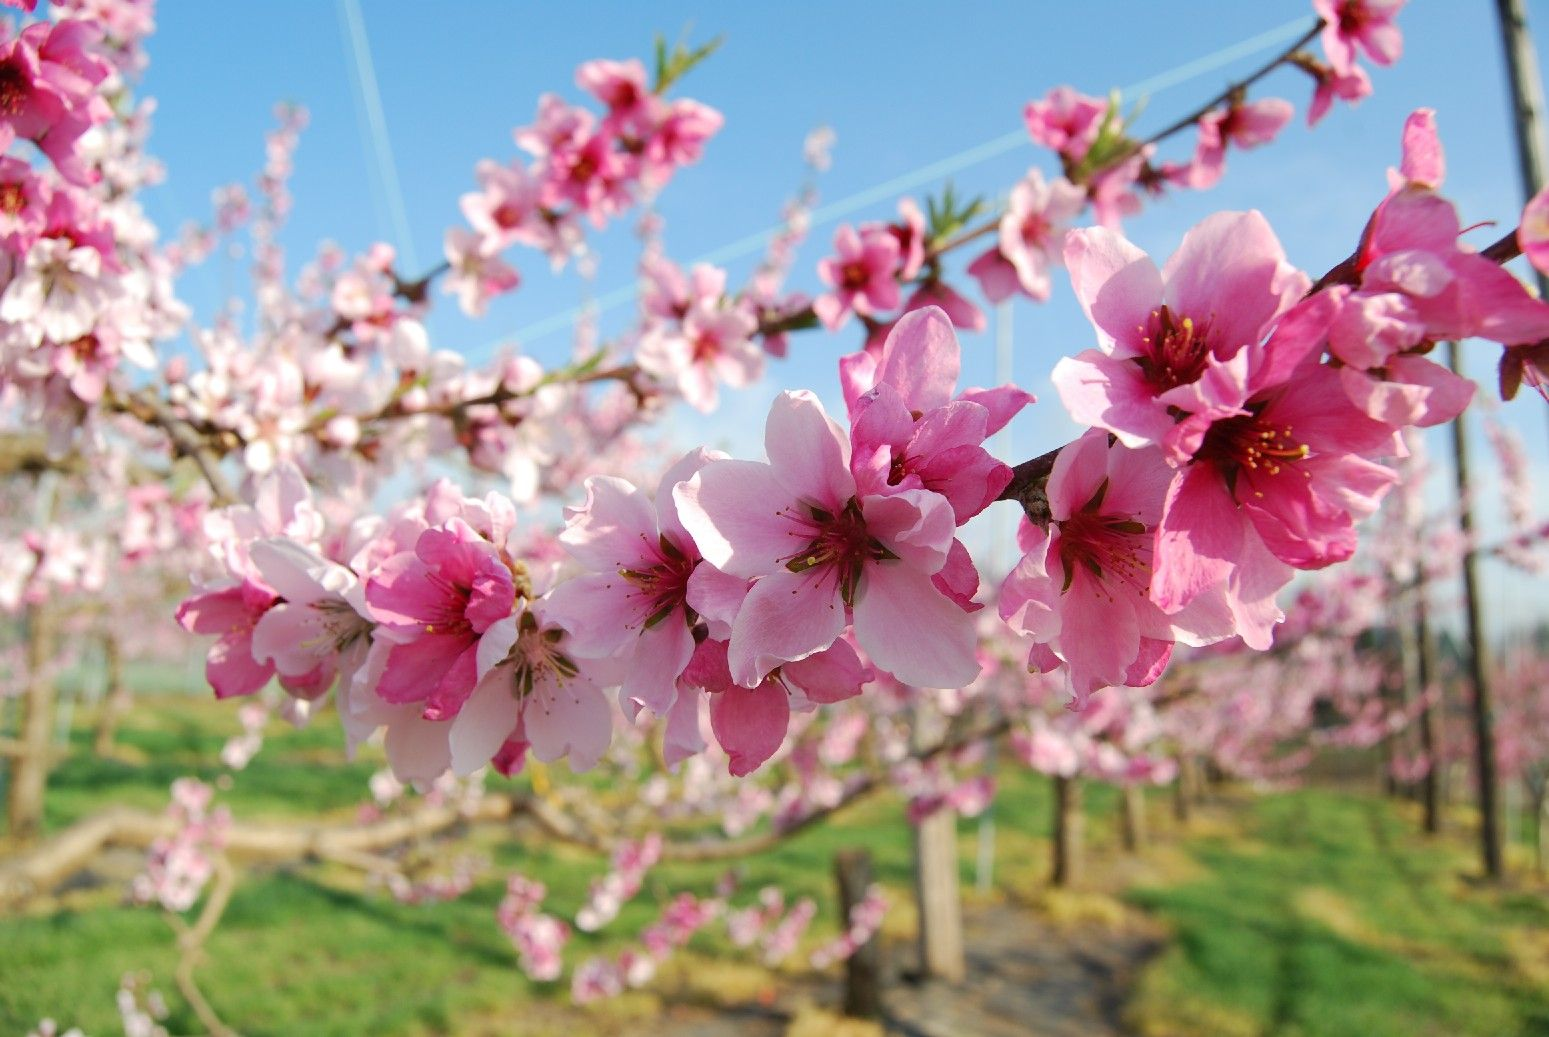 10 Beautiful Japanese Flowers And Their Meanings Tsunagu Japan Flower Meanings Japanese Flowers Flowers Photography